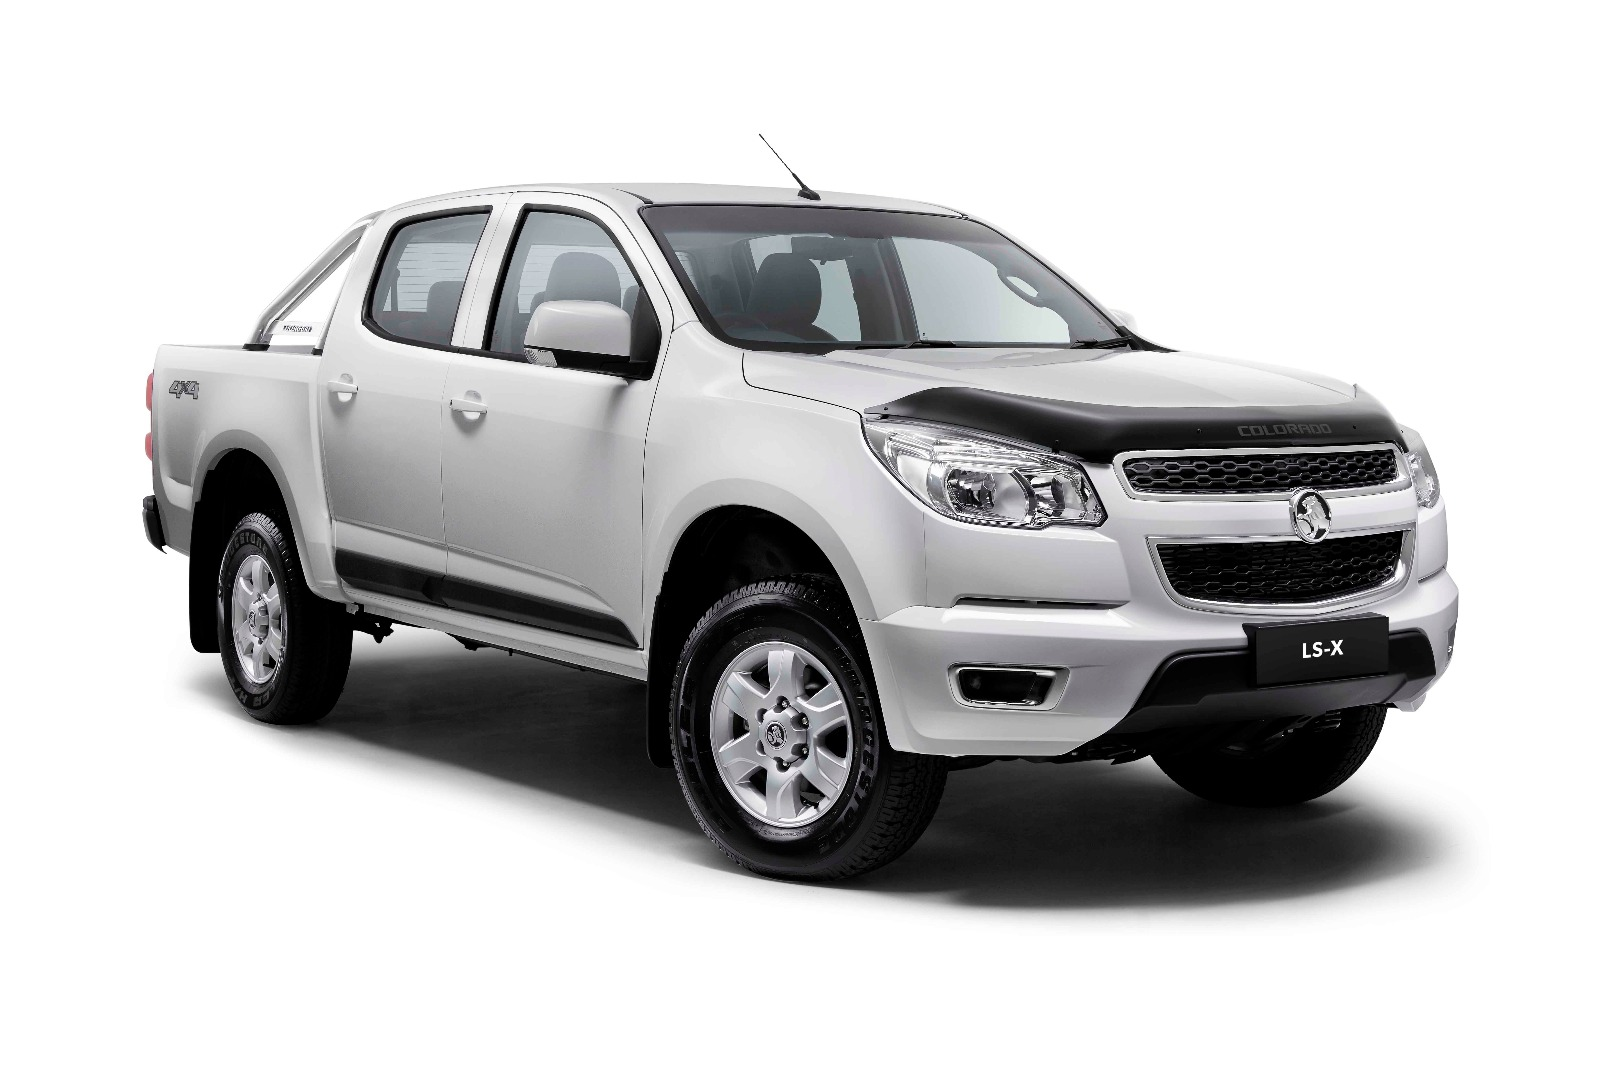 News - Holden Expands Colorado Range With New LS-X